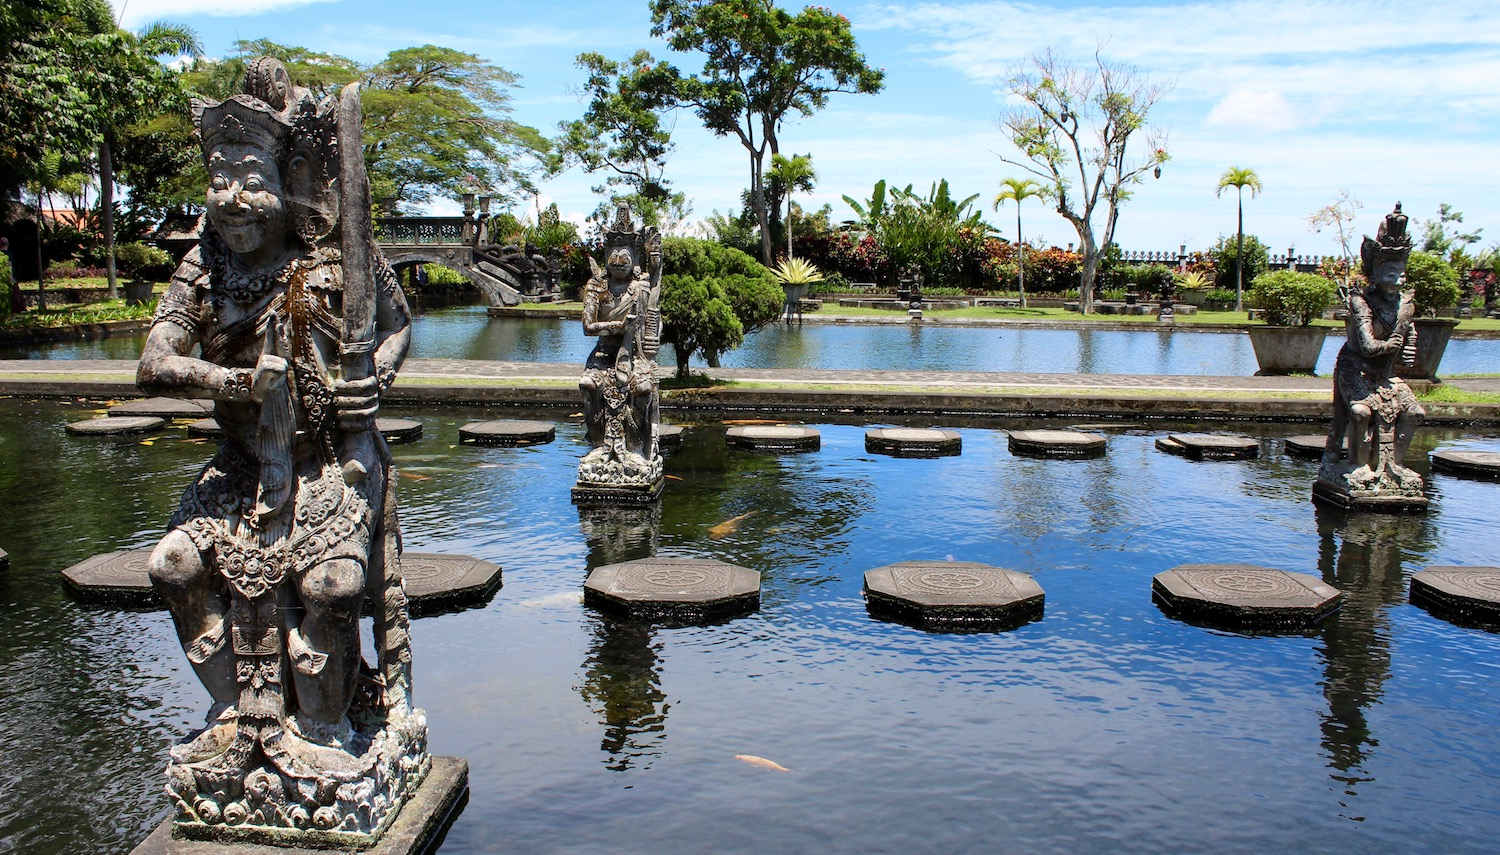 The statues and water gardens of Tirtta Gangga